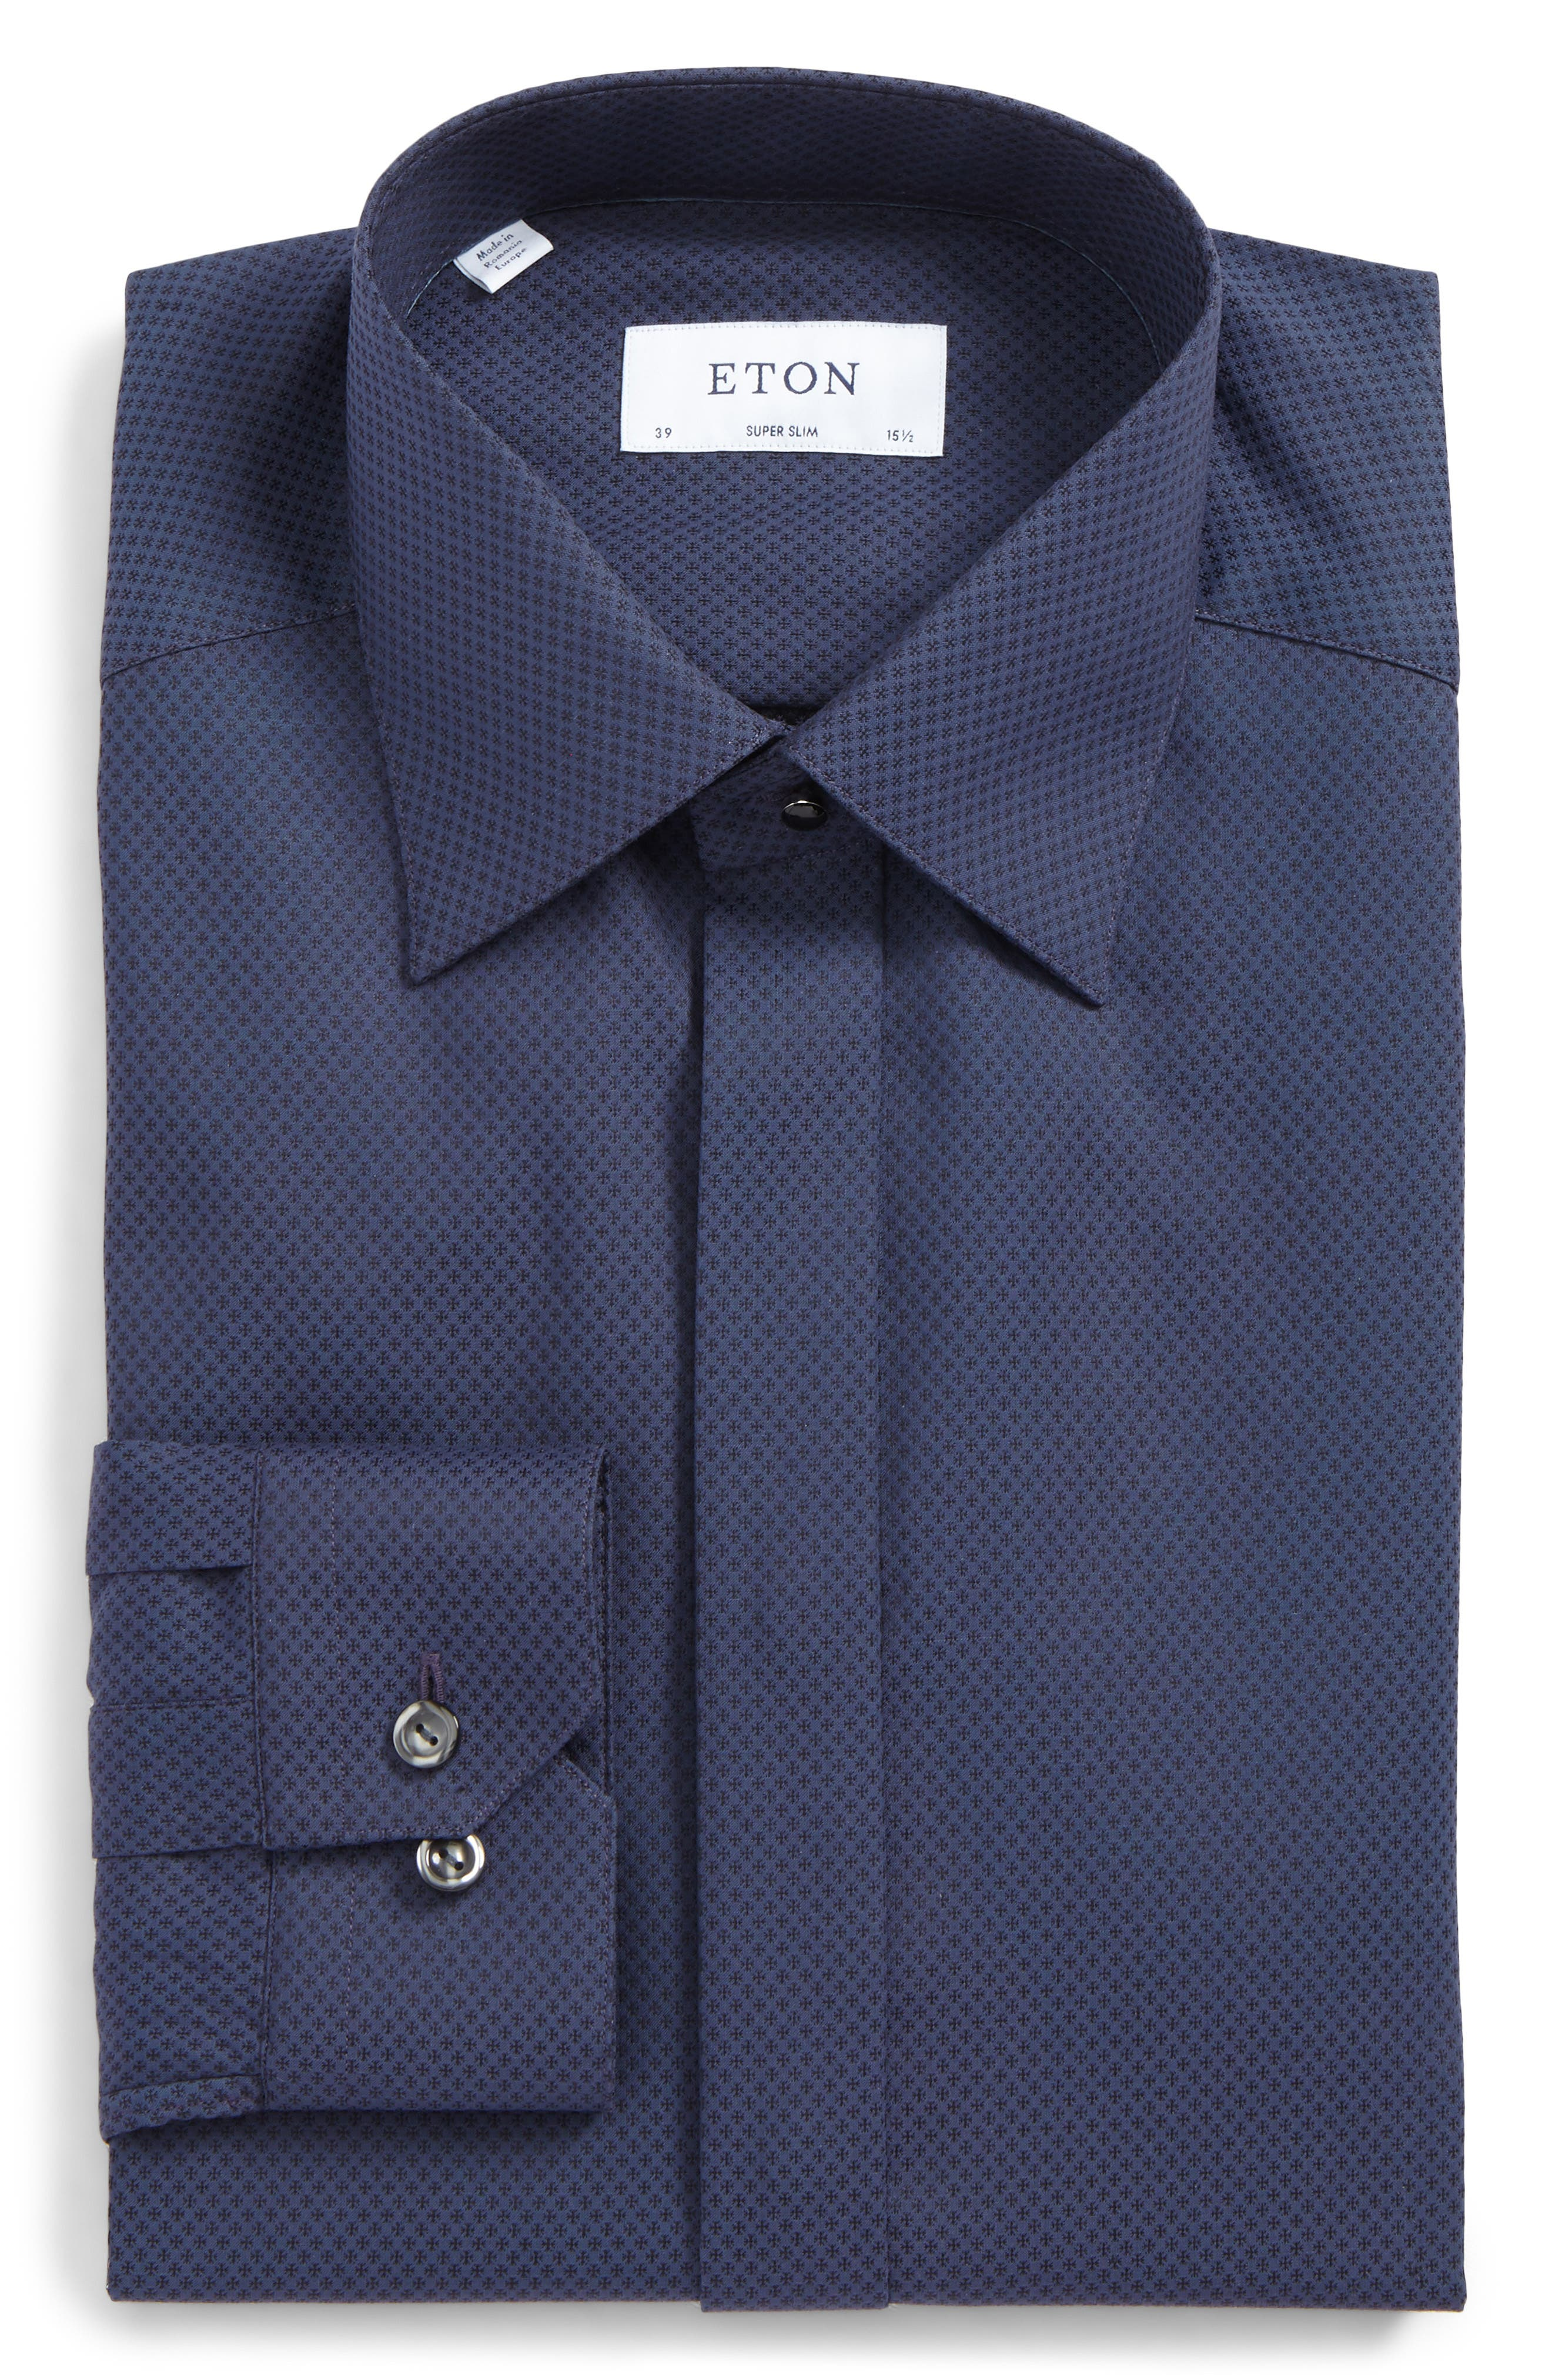 Eton Super Slim Fit Grid Dress Shirt